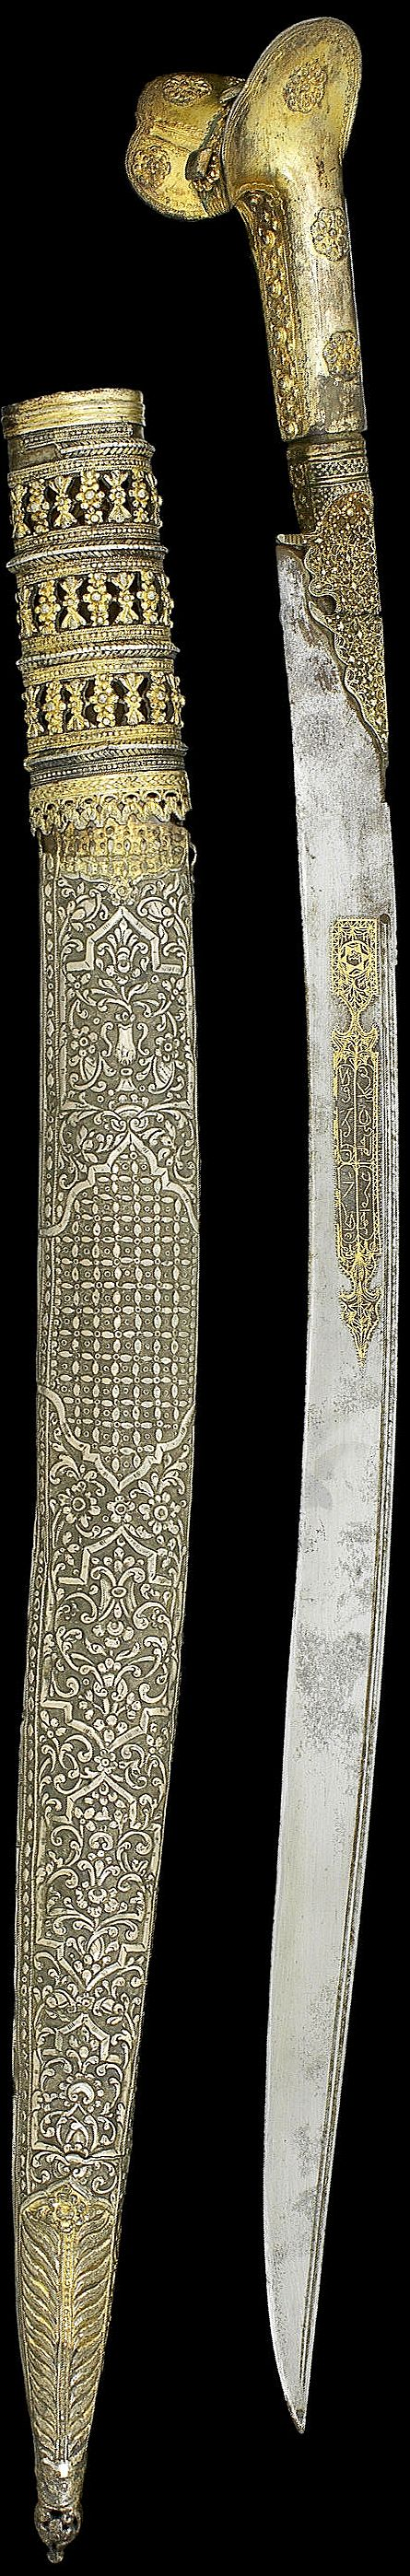 """Ottoman yatagan, 19th c, gold inlaid blade, silver-gilt grip and scabbard with filigree rosettes to sides and pommel, repousse silver scabbard with cartouches on a floral ground, gilded terminal and upper, 74.5cm. Inscribed:owner """"Asıl(?) Agha"""",  the dog of the Seven Sleepers """"Qitmir""""; other side """"bıcak elde gerek / delde sübhan tawakkuli 'ala khaliqi / ghayrat [?] ahmad"""", """"In the hand one must have a dagger, and 'Praise Him!' in one's heart, my dependance is on my creator Ghayrat [?]…"""